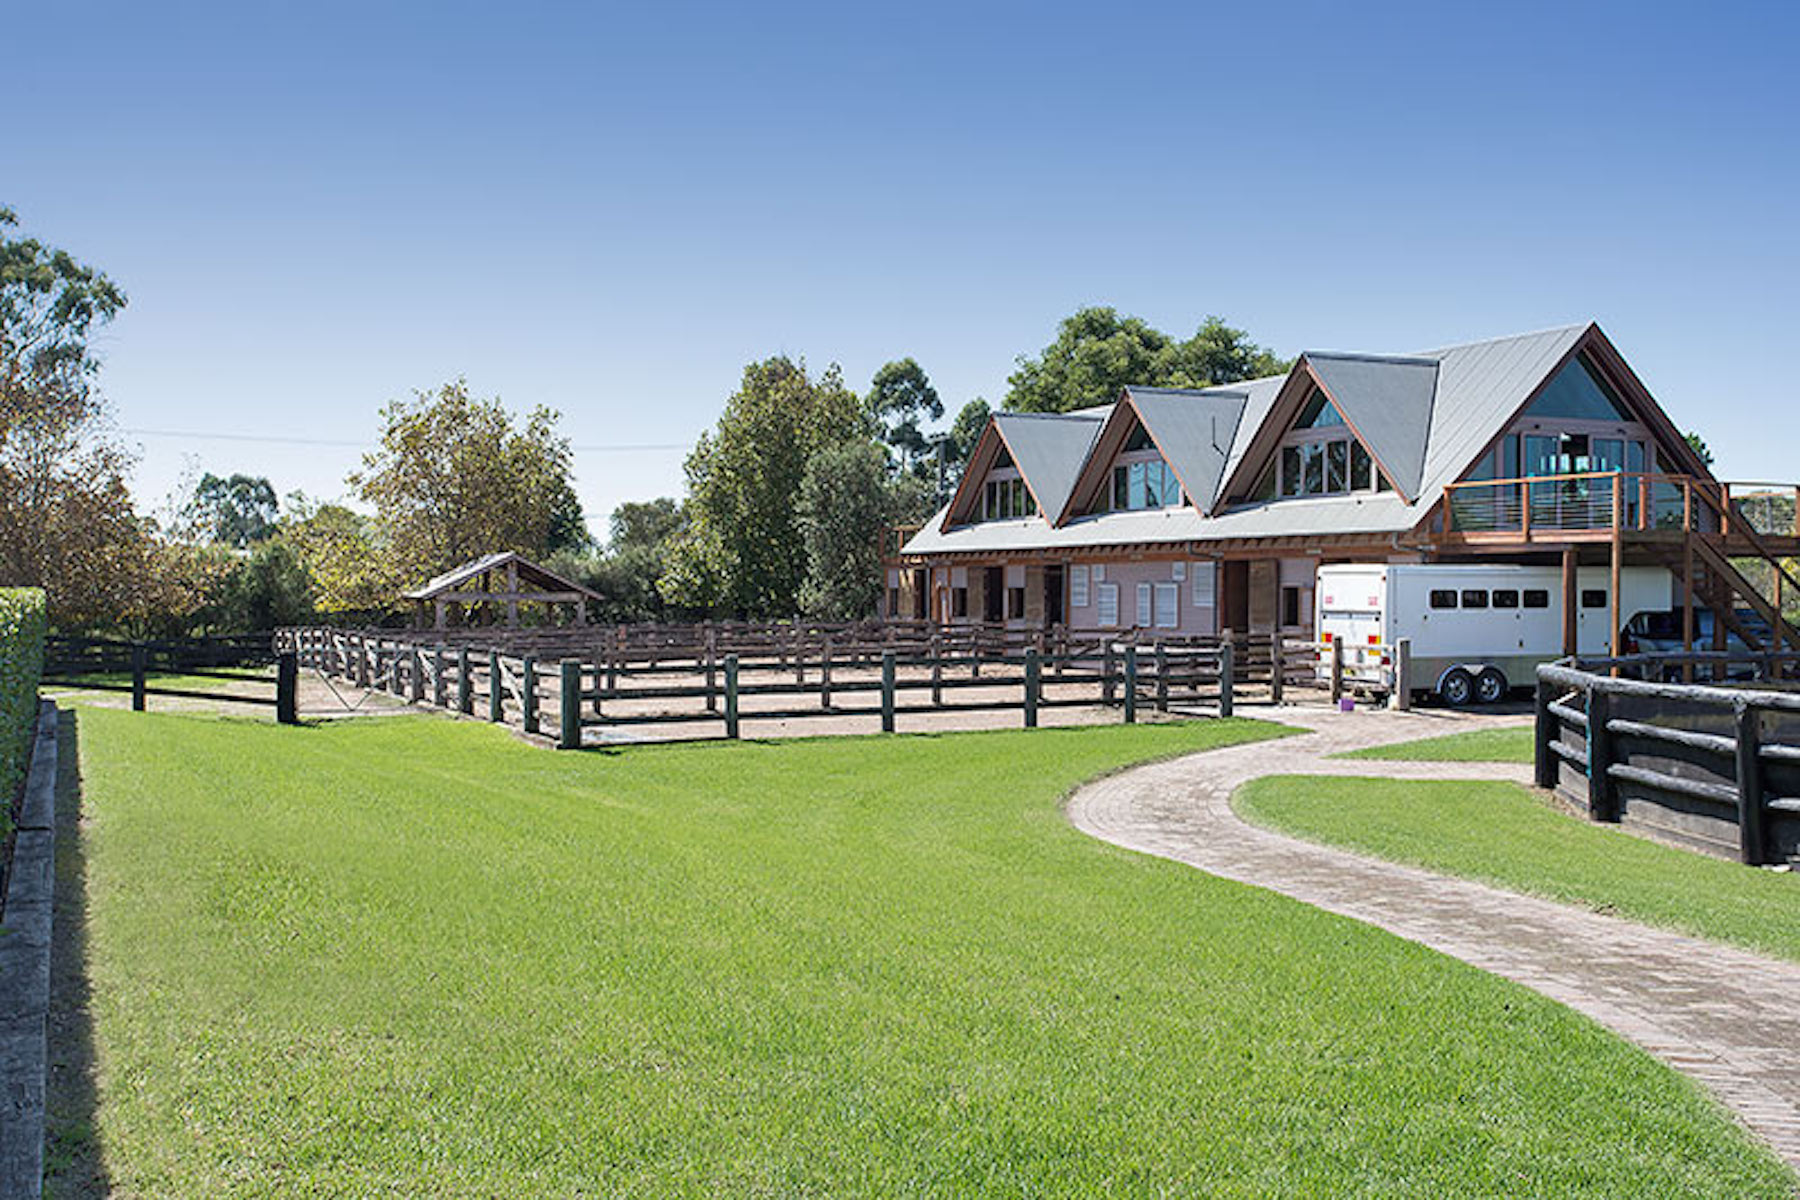 Ferme / Ranch / Plantation pour l Vente à 394 Wyong Road, Duffy's Point Sydney, New South Wales, 2611 Australie